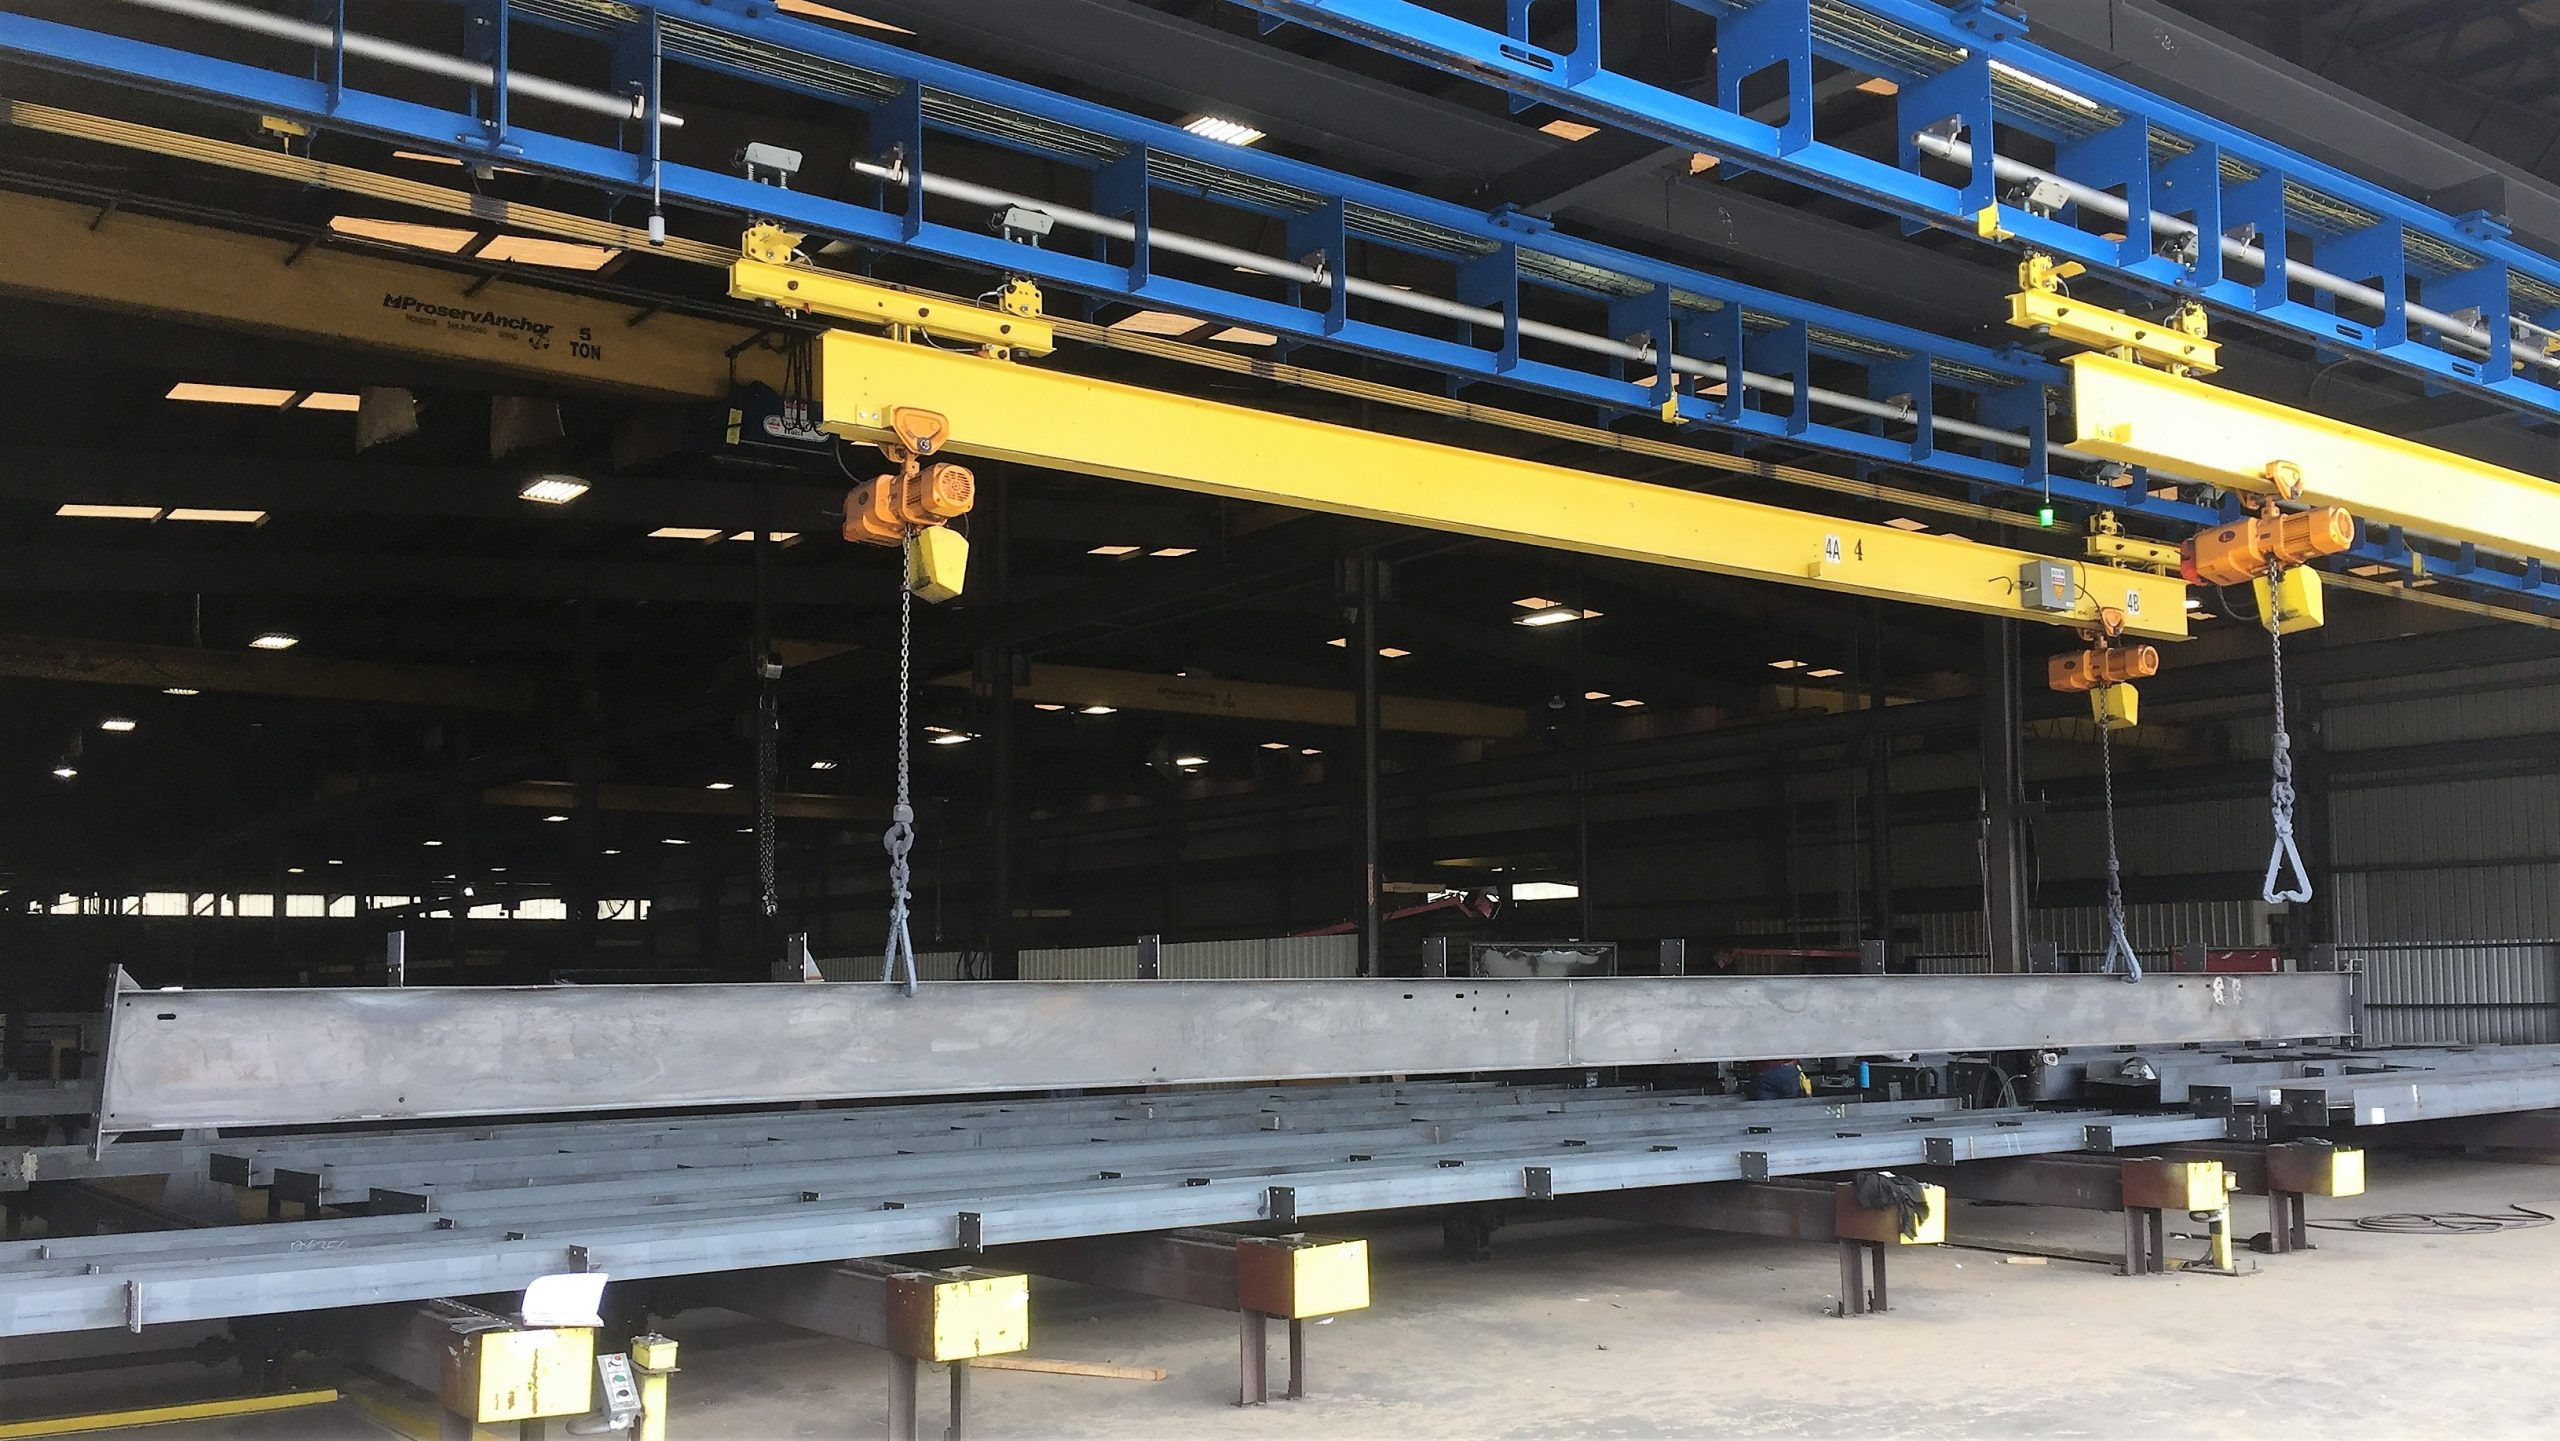 IntelliTrak 1500 Series Overhead Conveyor - Building Structure Finishing Line